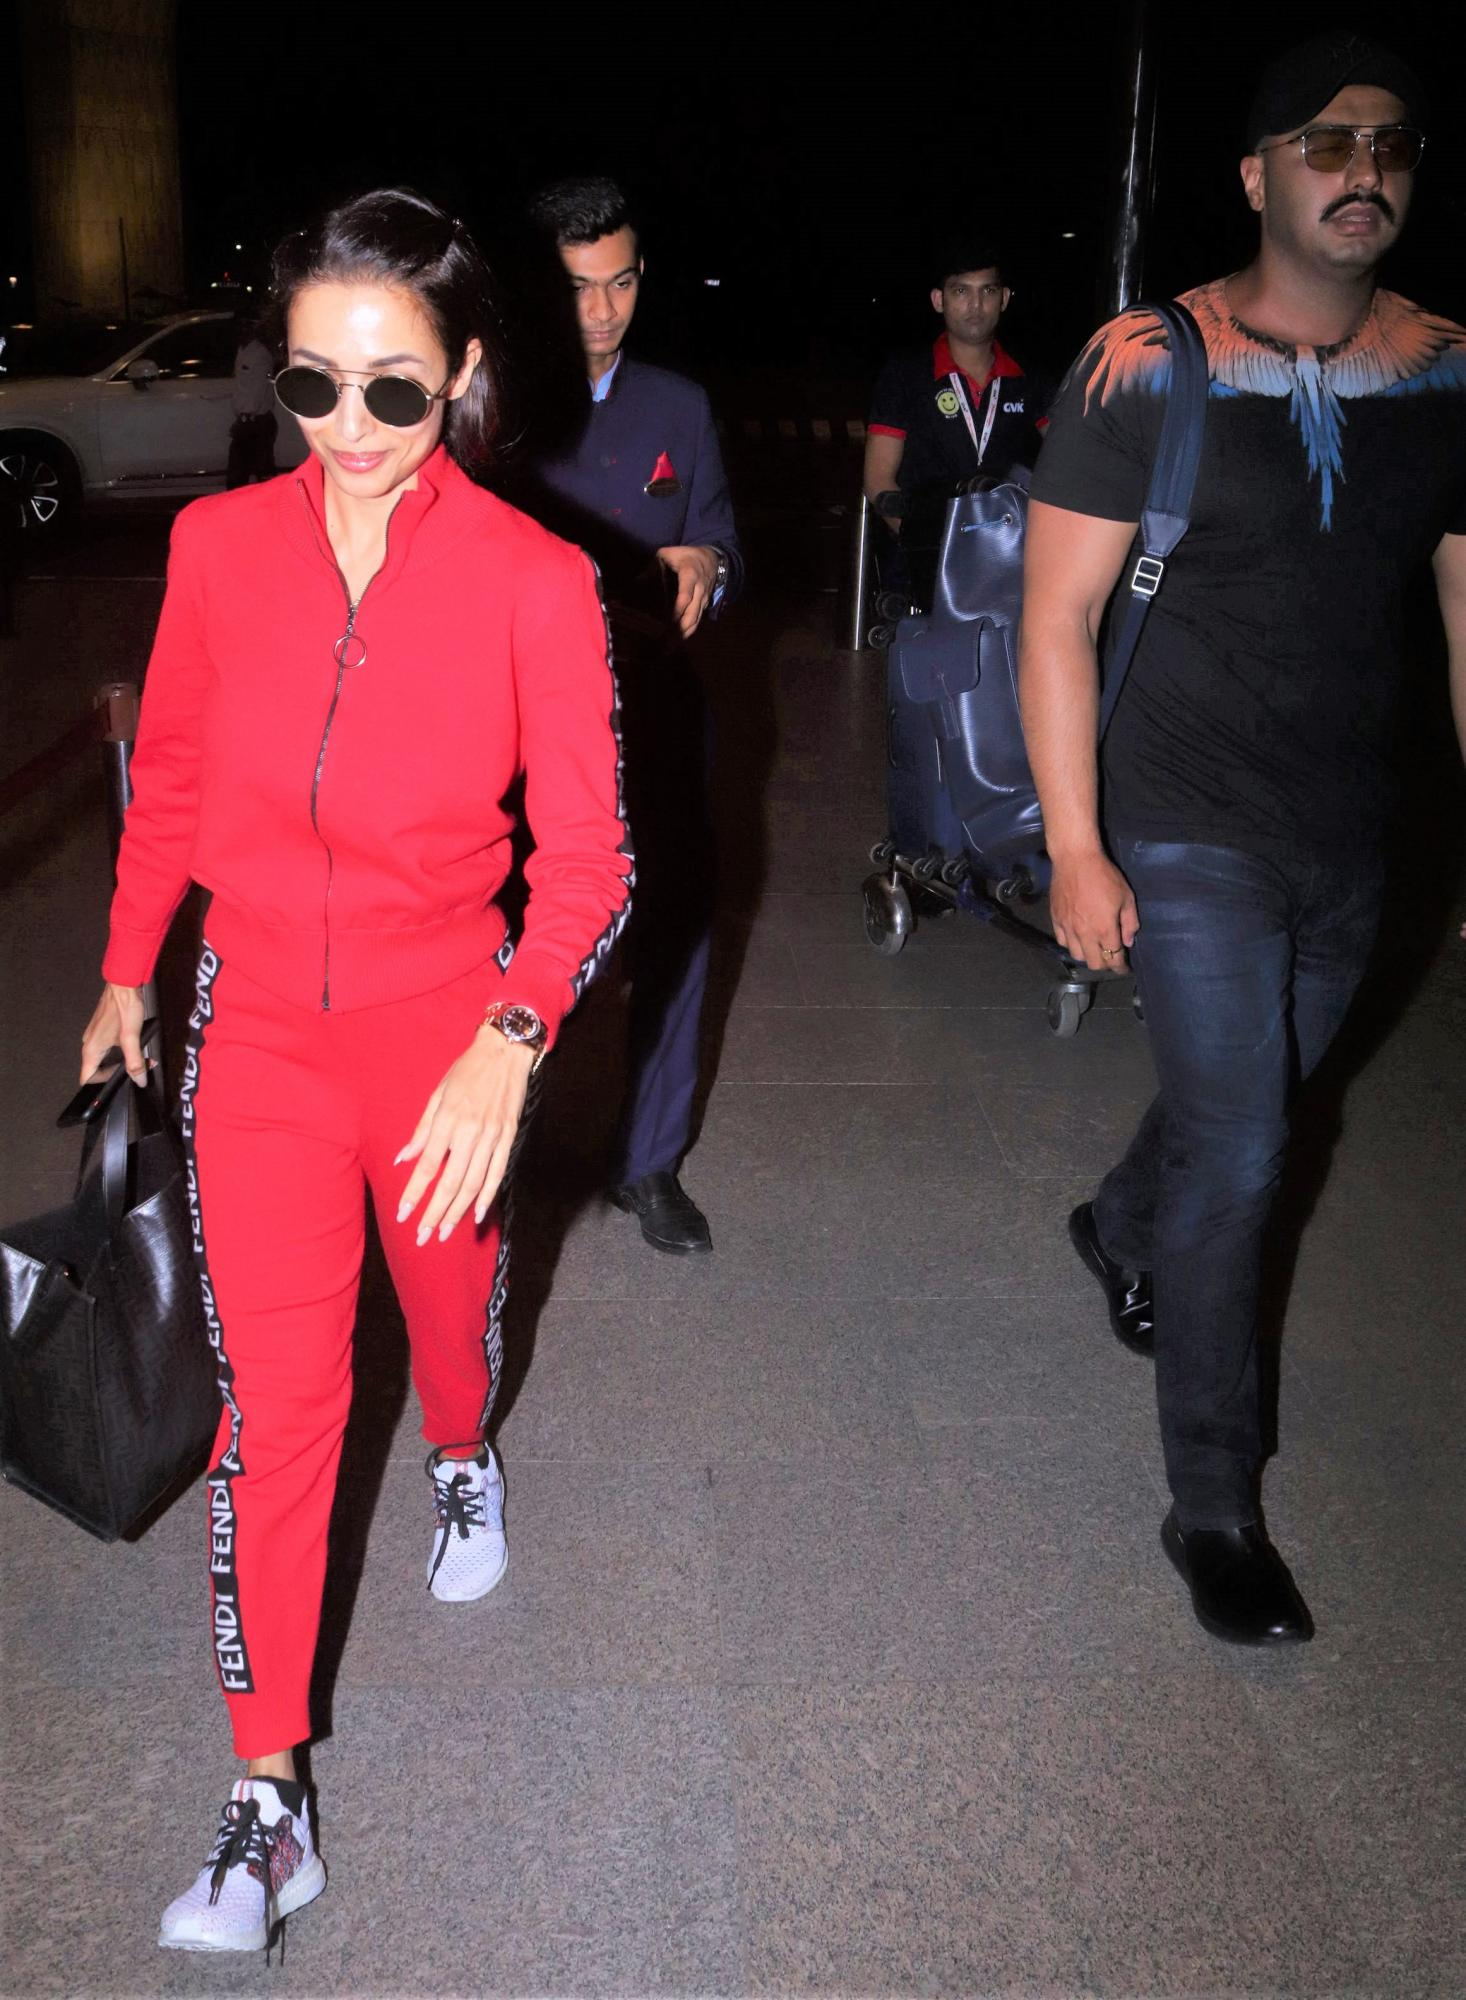 Malaika Arora and Arjun Kapoor Keep It Casual Chic In Latest Airport Look